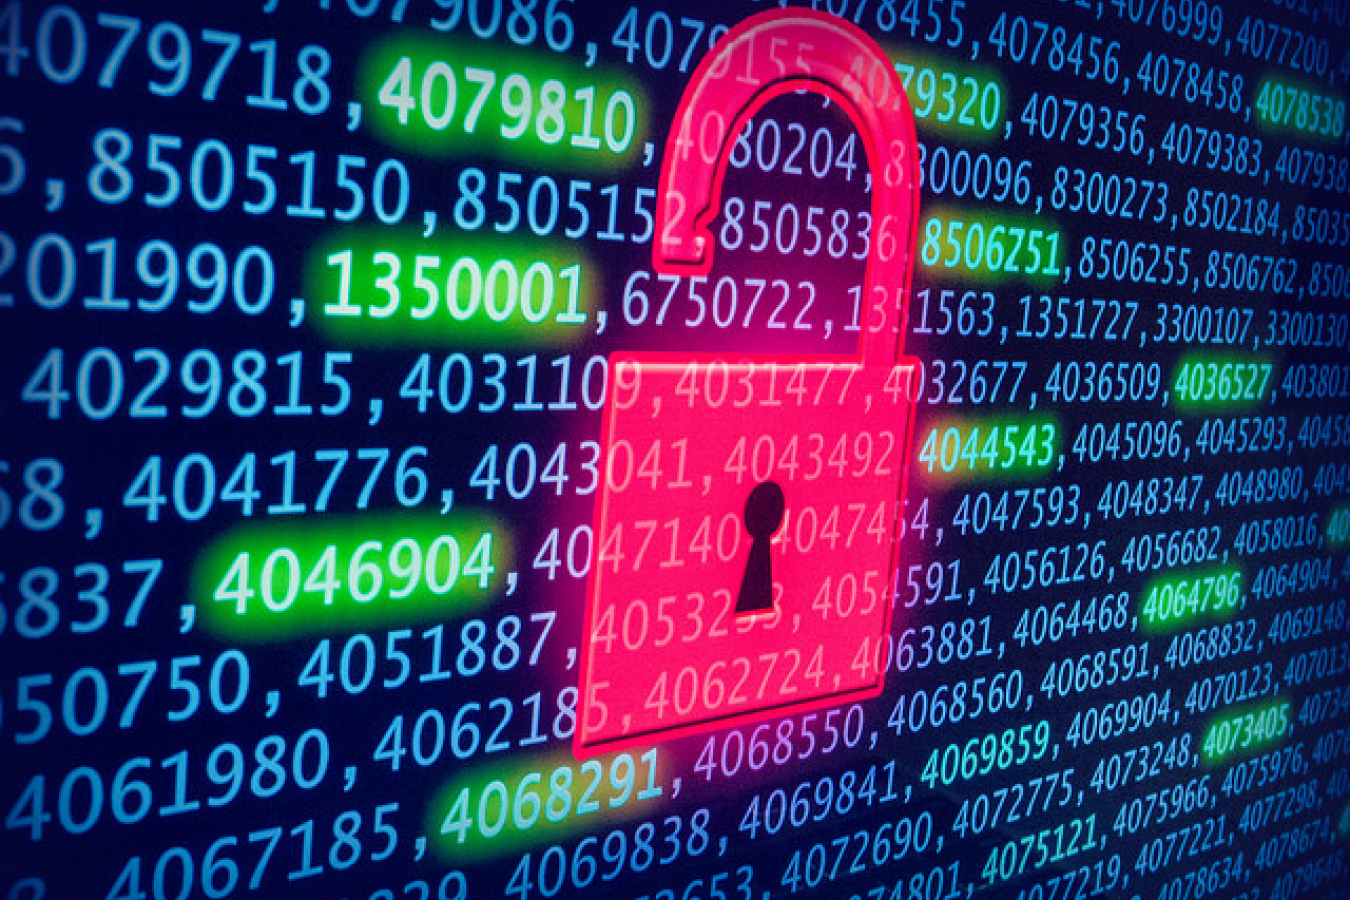 Data Breaches more likely due to a shortage of IT workers in UK